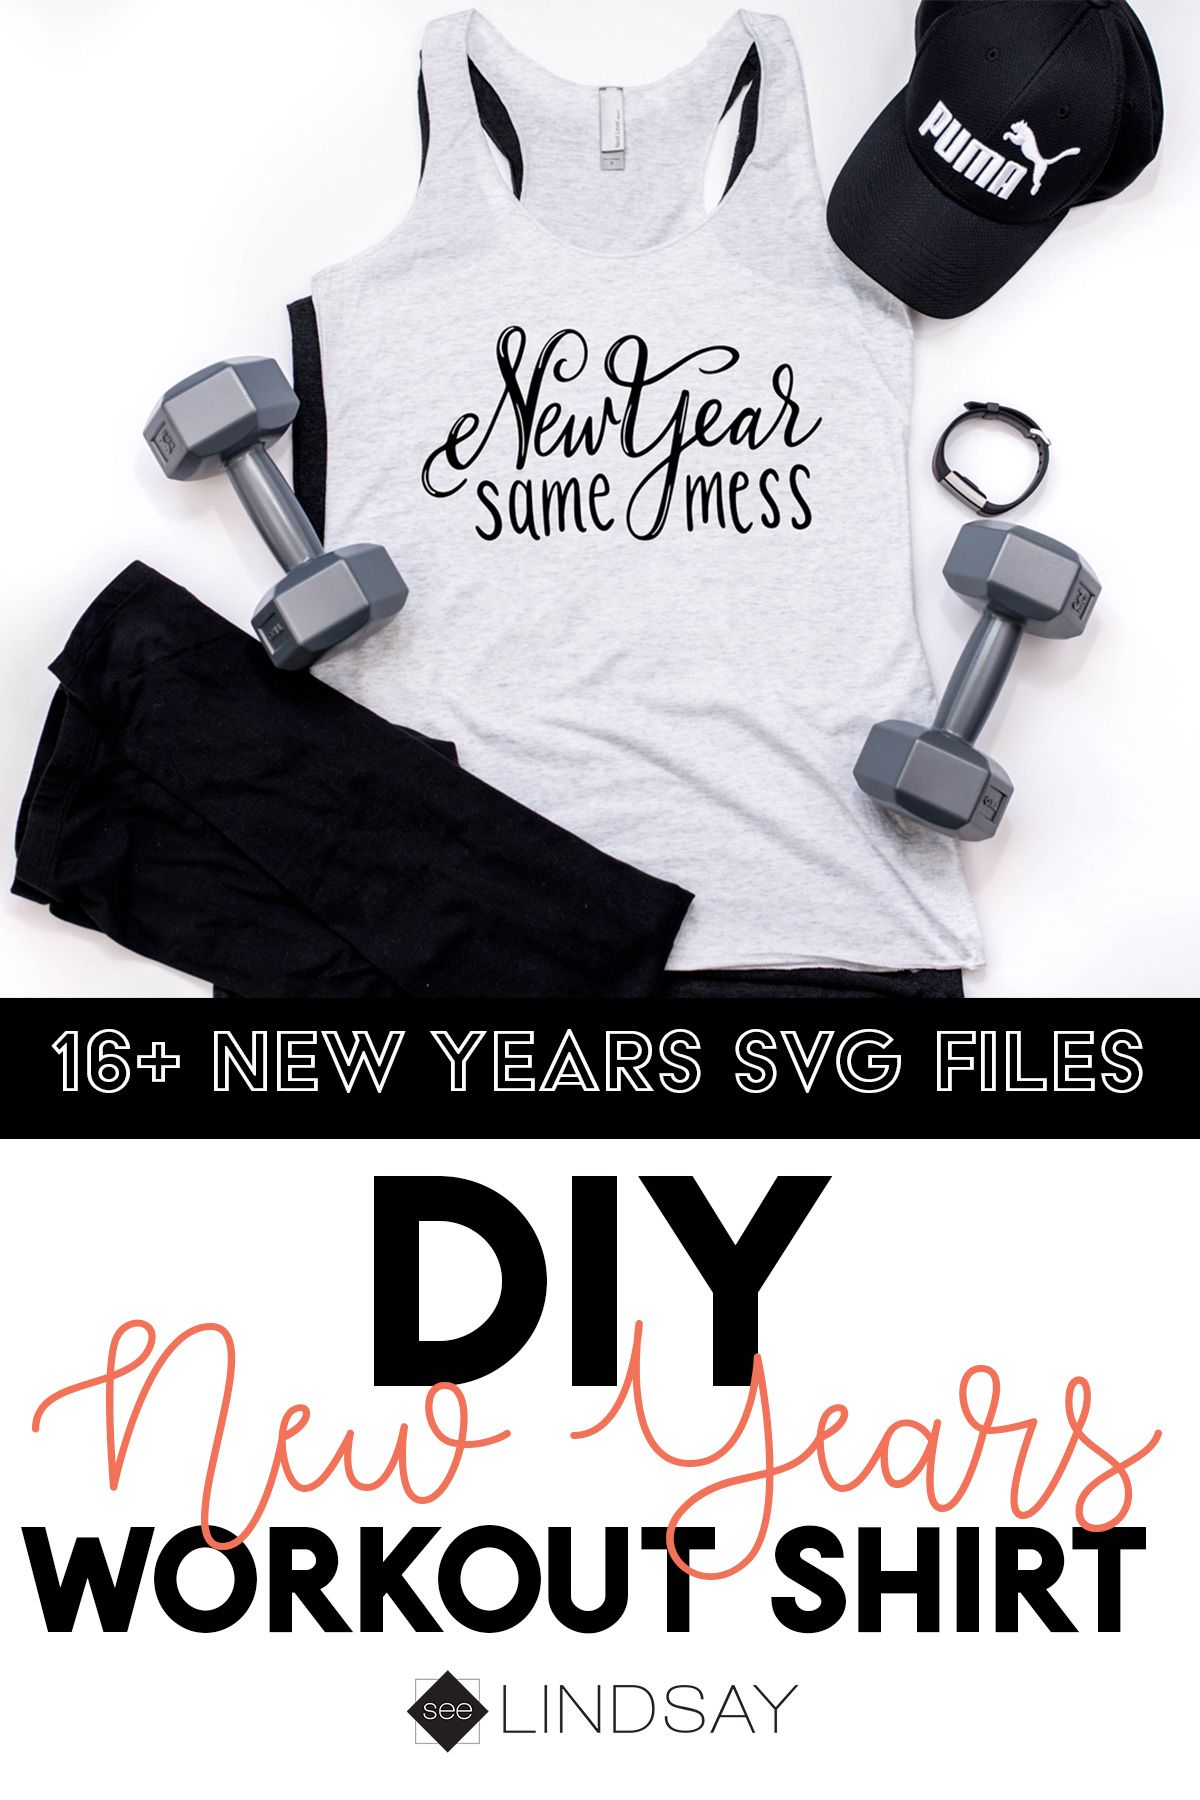 Number one hot mess express is here! Use this free SVG file with your Cricut or Silhouette and make this totally honest New Years shirt for workouts or just your standard homemade t-shirt for lazy days. #cricutmade #freesvg #cricut #silhouette #newyearsoutfit #workoutshirt #silhouetteamerica #silhouettecameo #cricutmaker #cricutexplore